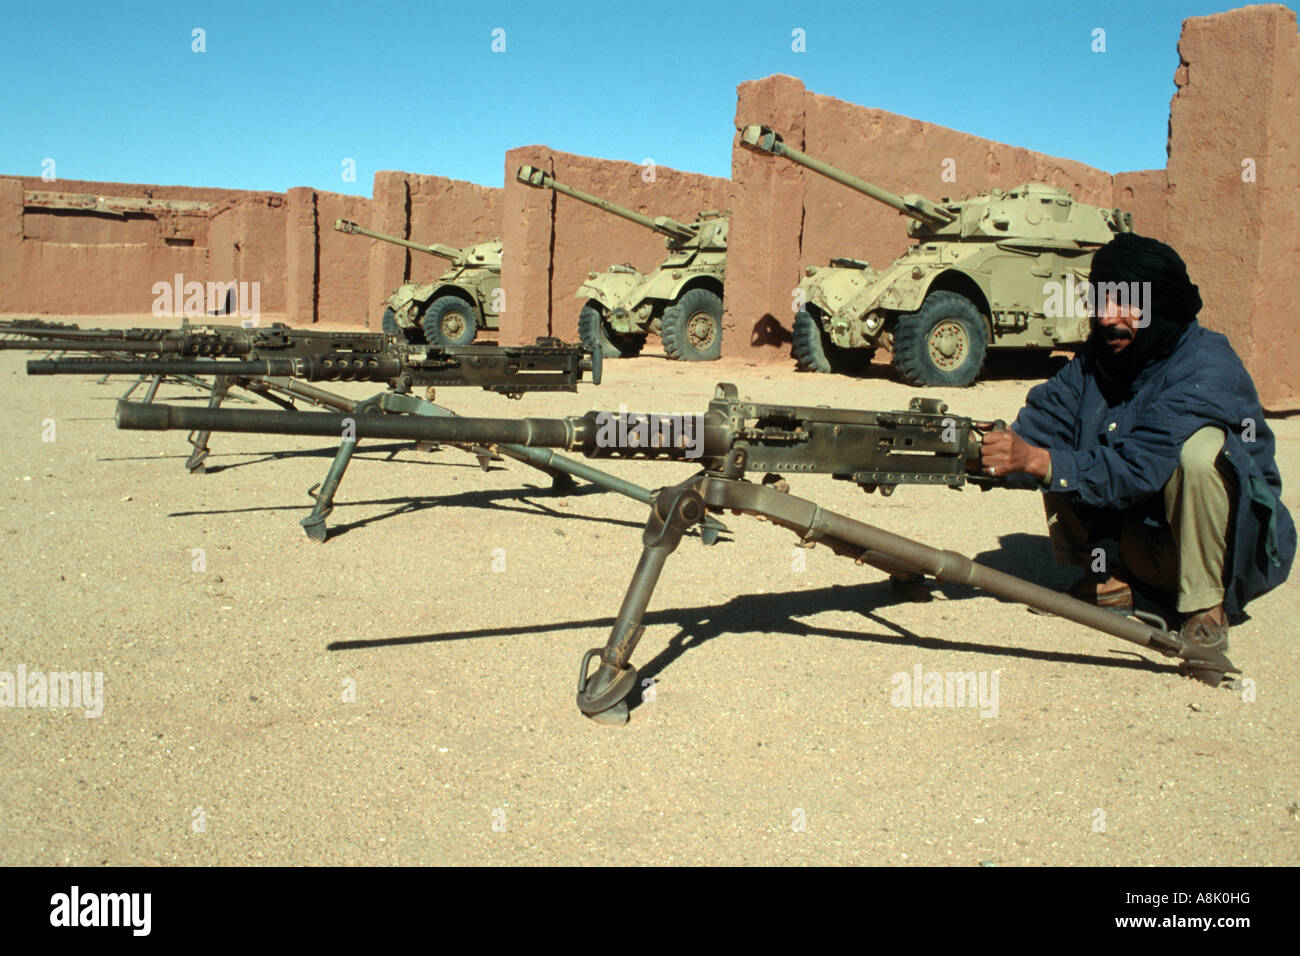 WESTERN SAHARA POLISARIO FIGHTERS TRAINING WITH WEAPONS CAPTURED FROM MORROCCAN ARMY Photo Julio Etchart - Stock Image